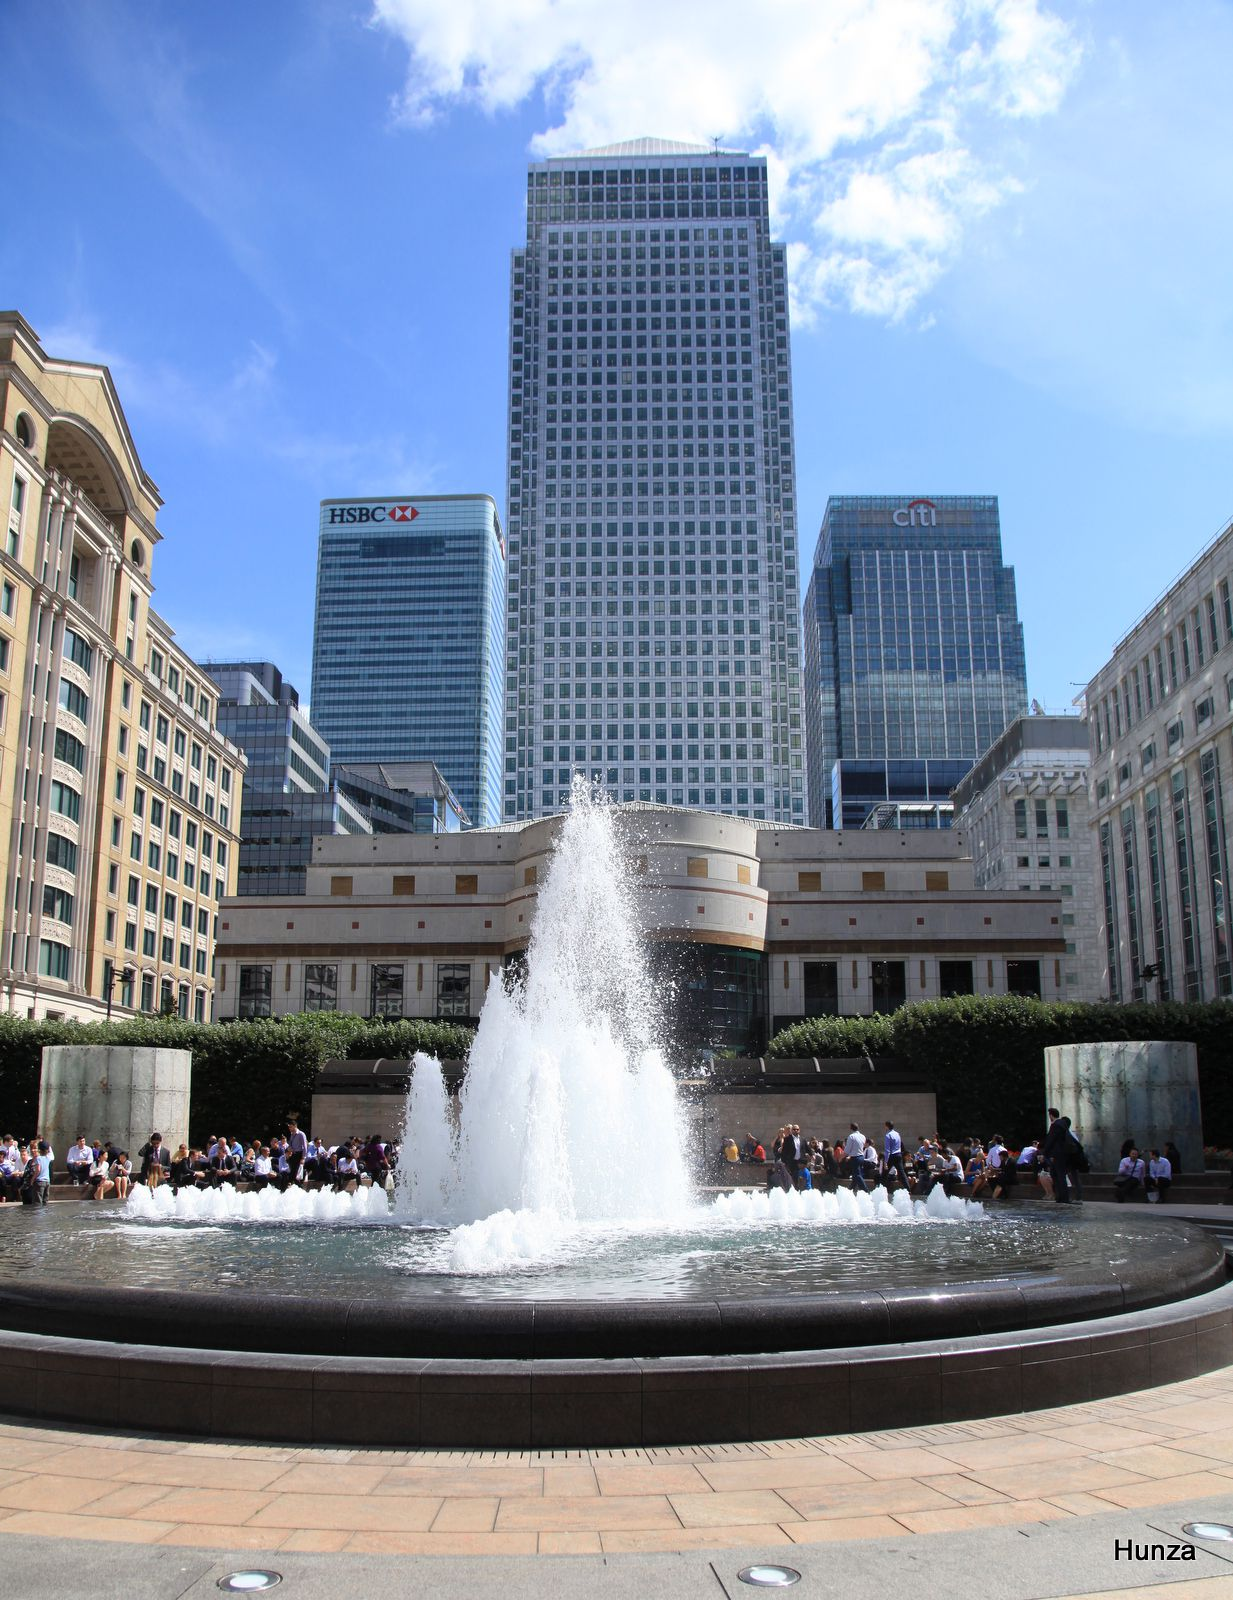 Cabot square, Canary Warf